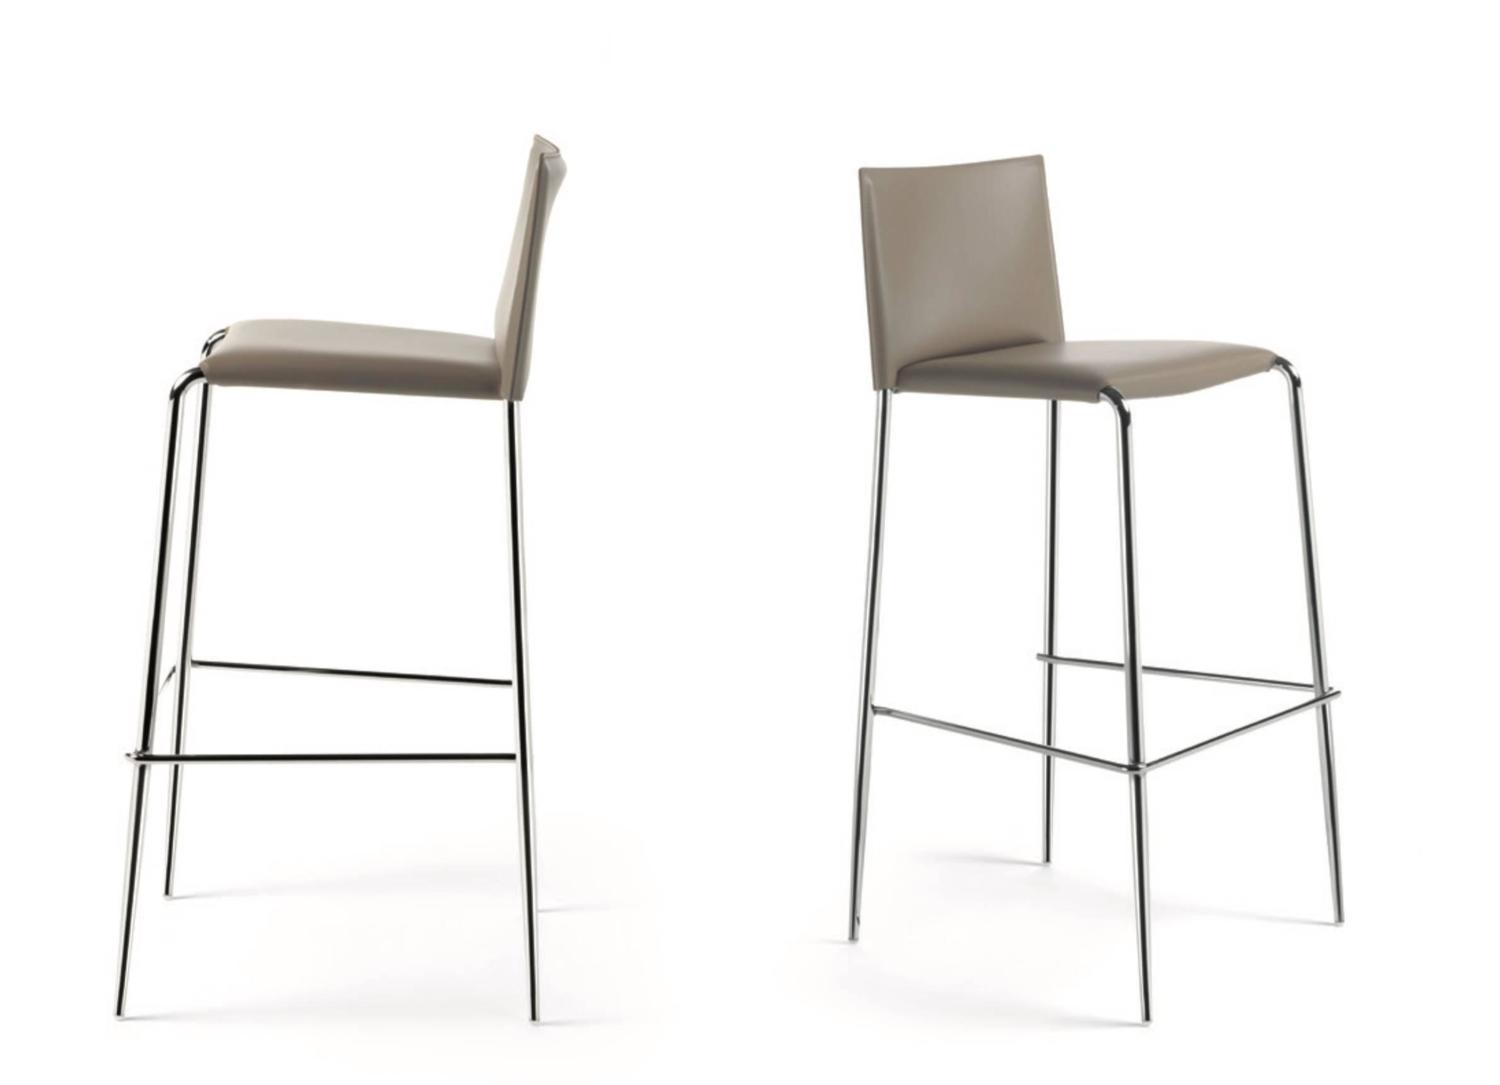 Amazing Italian Modern Bar Stool Made Of Leather, Made In Italy, New 30 Colors  Available For Sale At 1stdibs